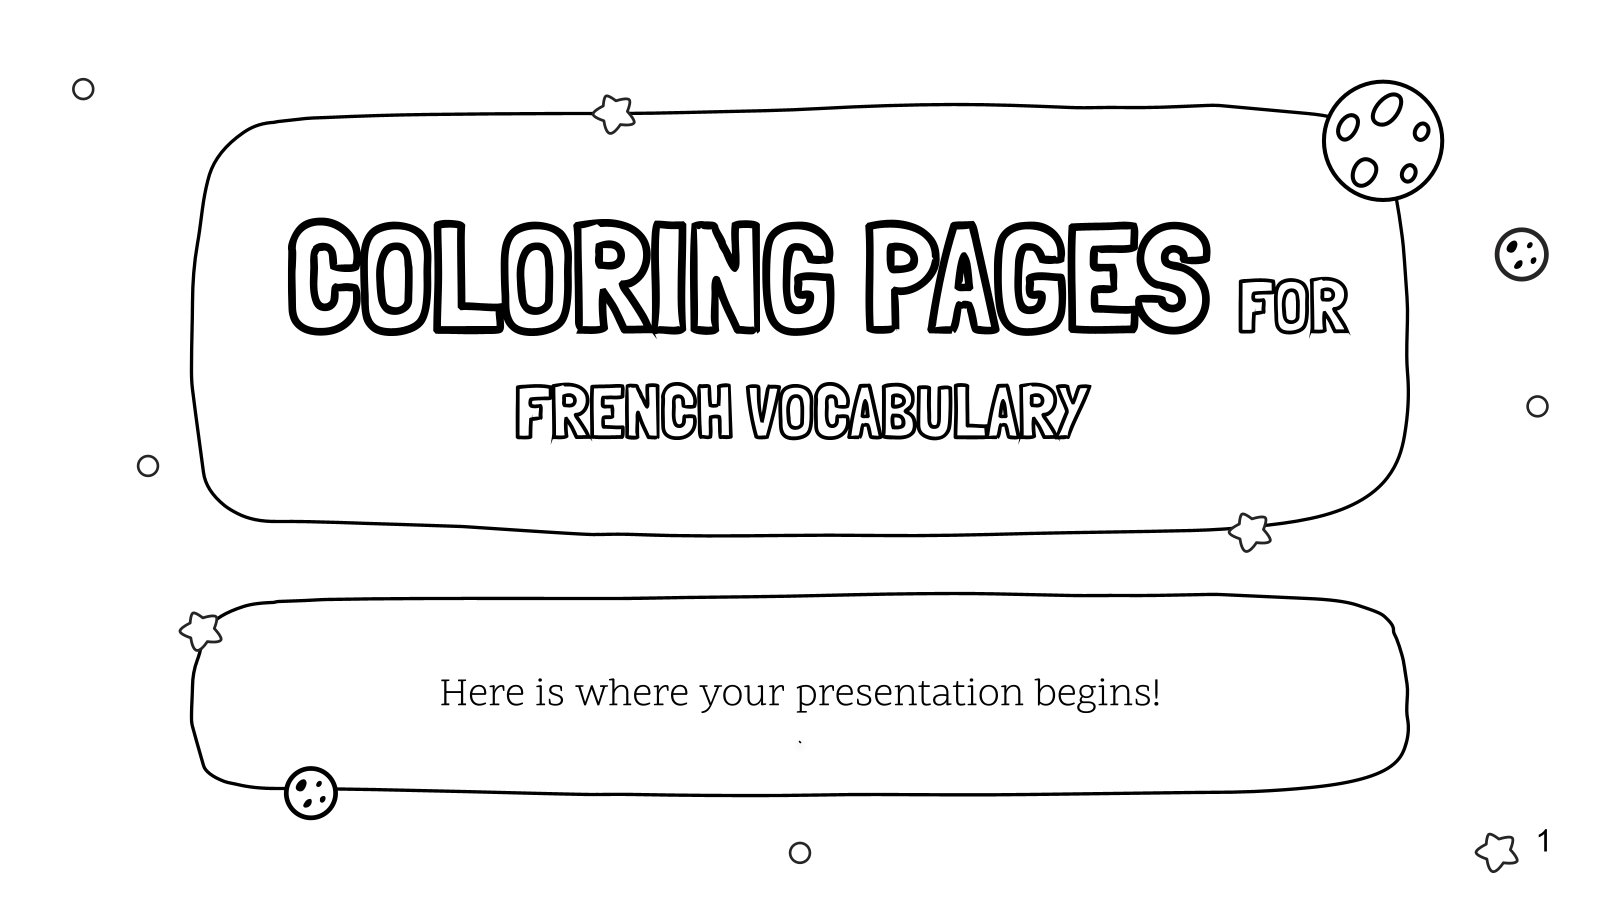 Coloring Pages for French Vocabulary presentation template